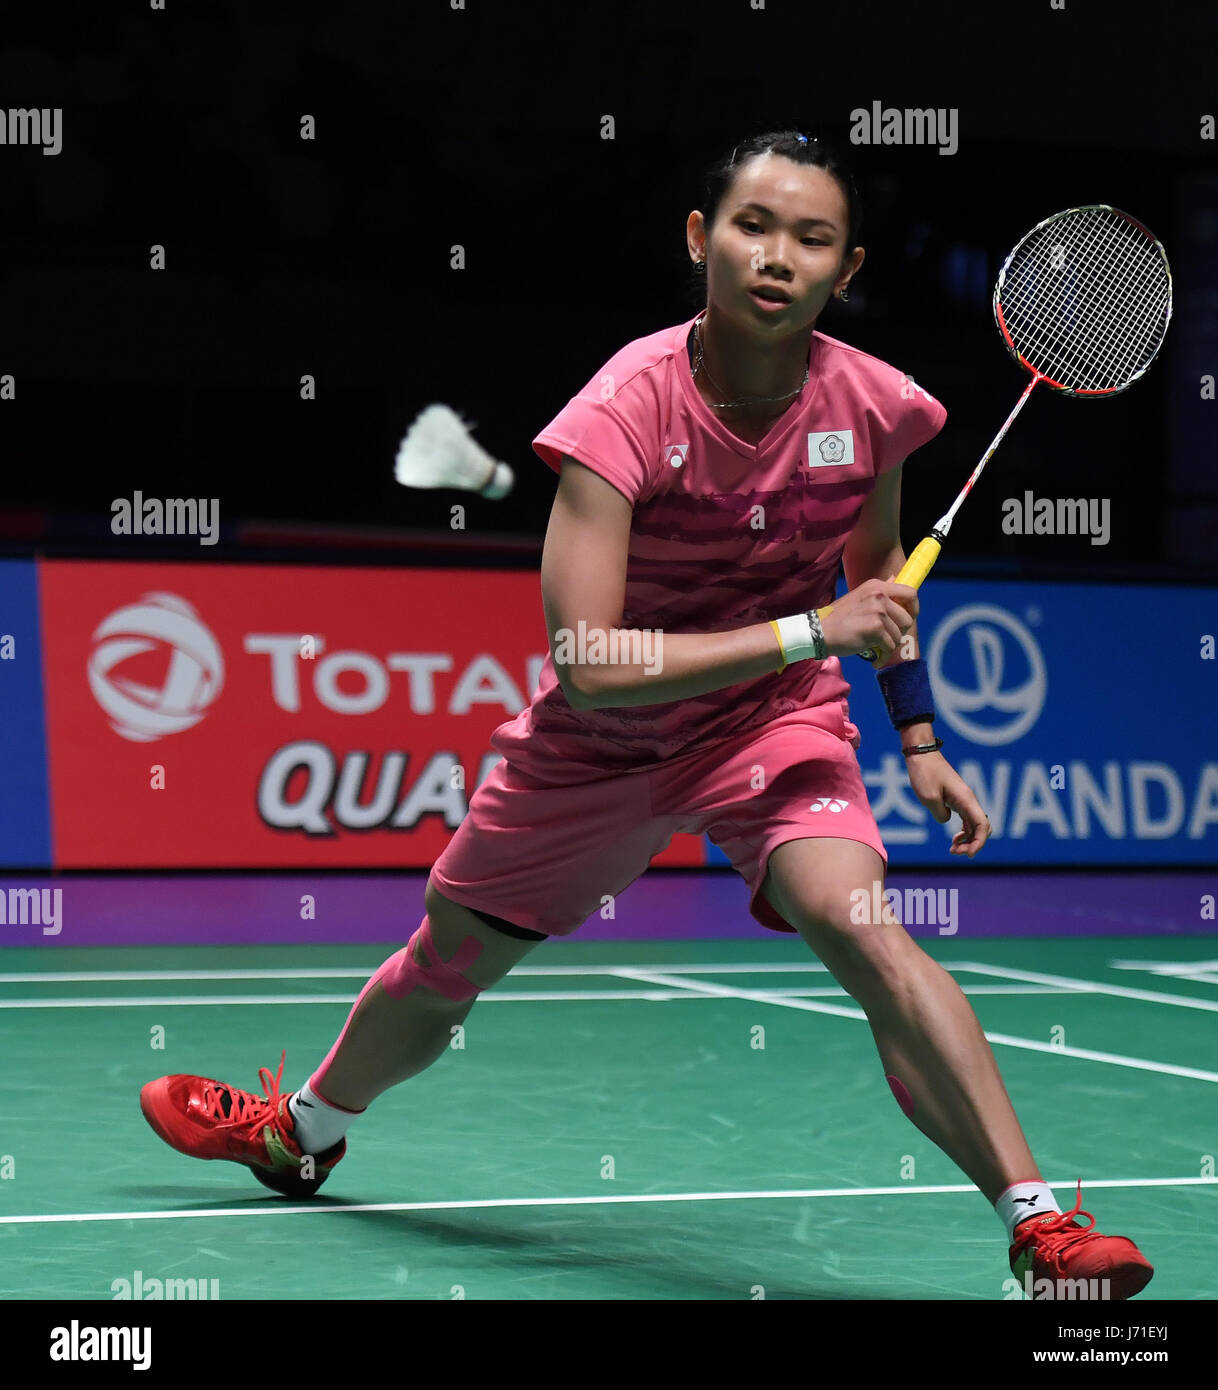 GOLD COAST May 22 2017 Xinhua Tai Tzu Ying of